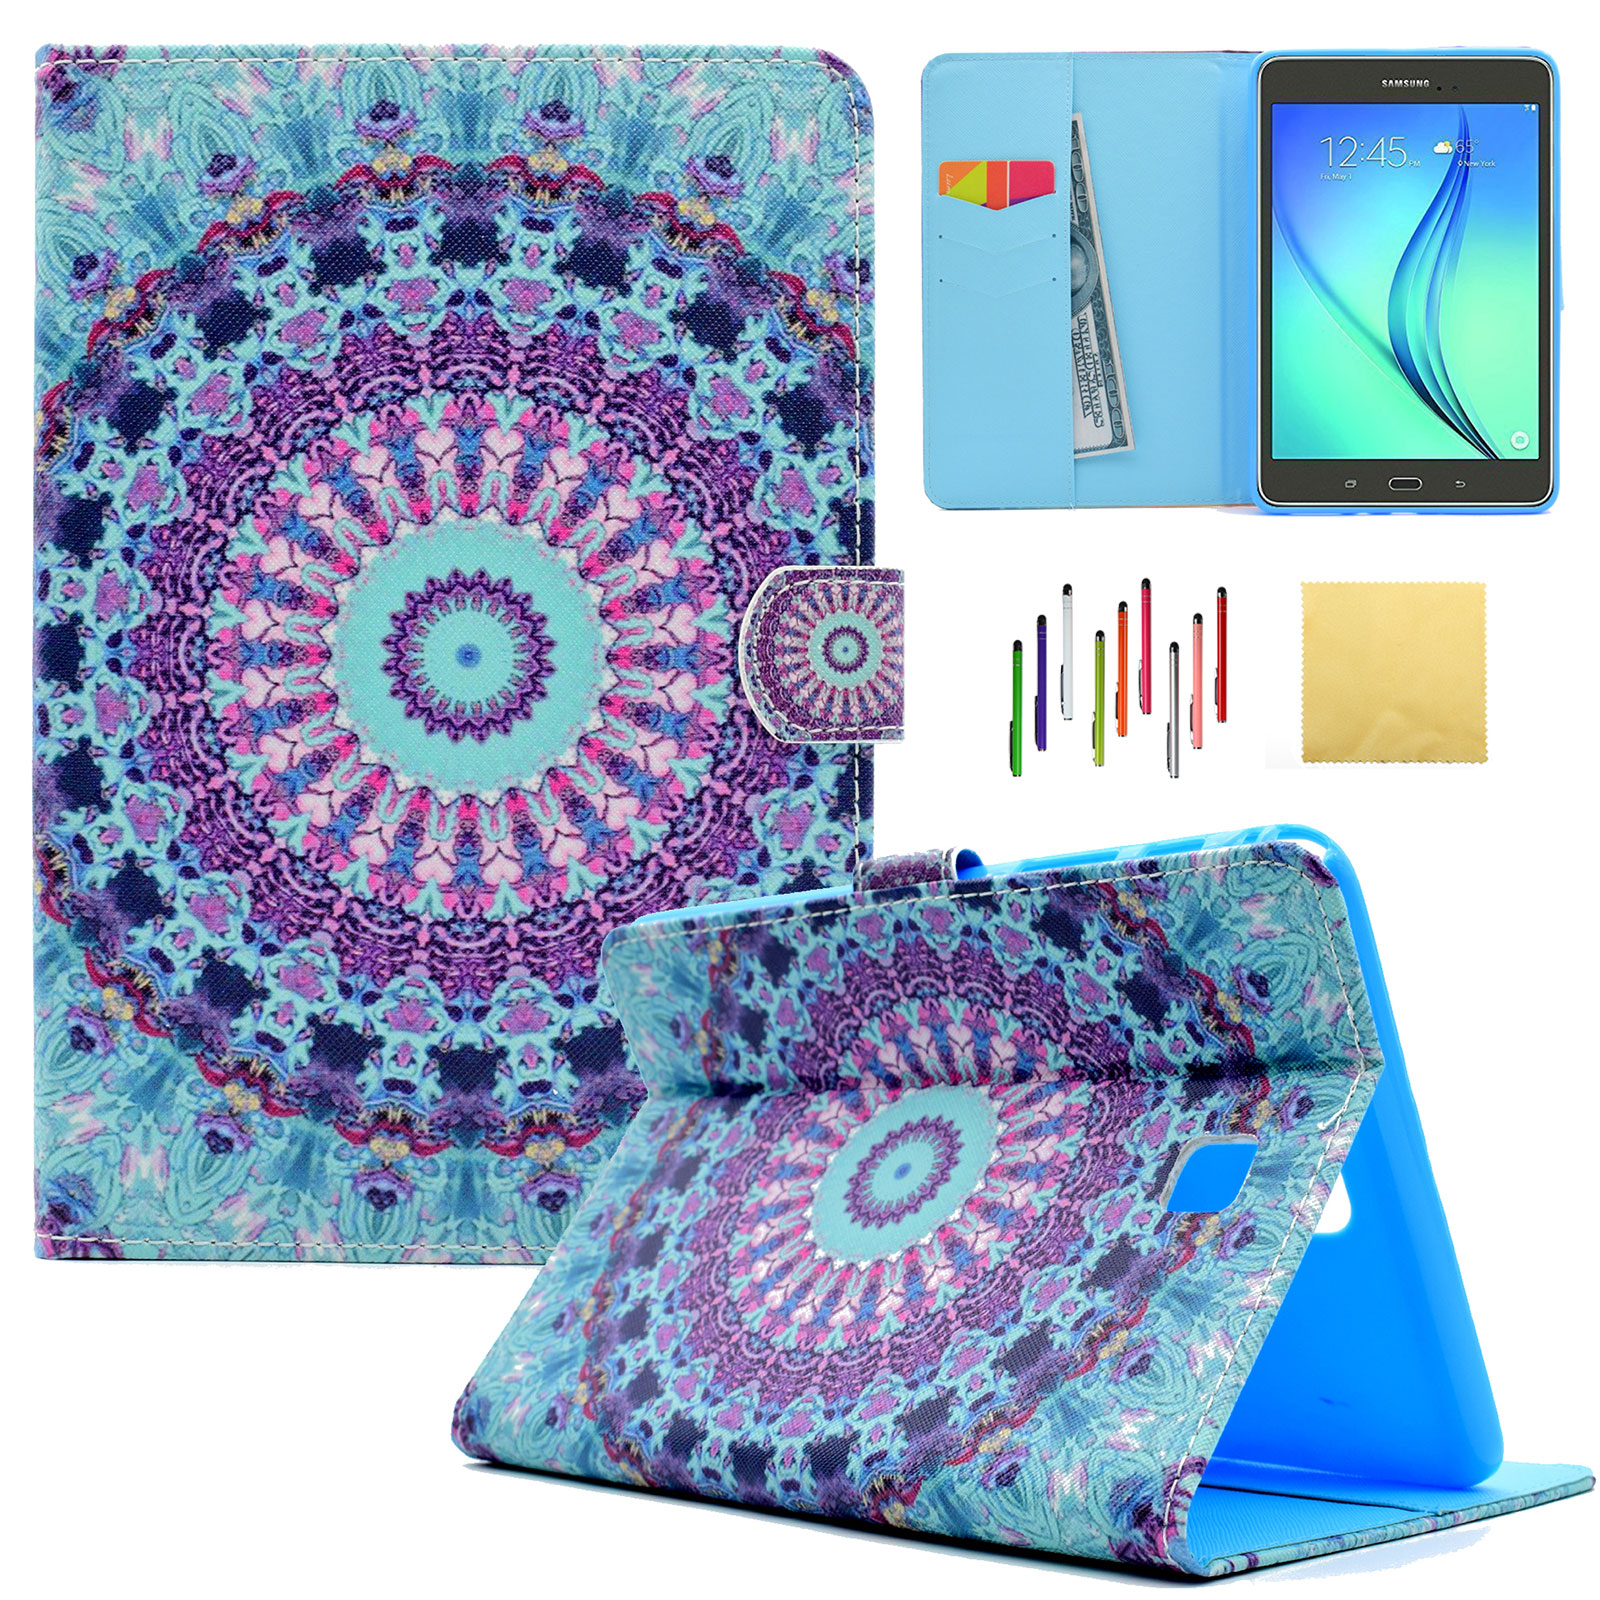 Galaxy Tab A 8.0 Case, SM-T350 P350 Case, Goodest Slim Lightweight PU Leather Case Flip Folio Stand Case Cover for Samsung Galaxy Tab A 8.0 inch Tablet(Not for SM-T380), Mandala Totem